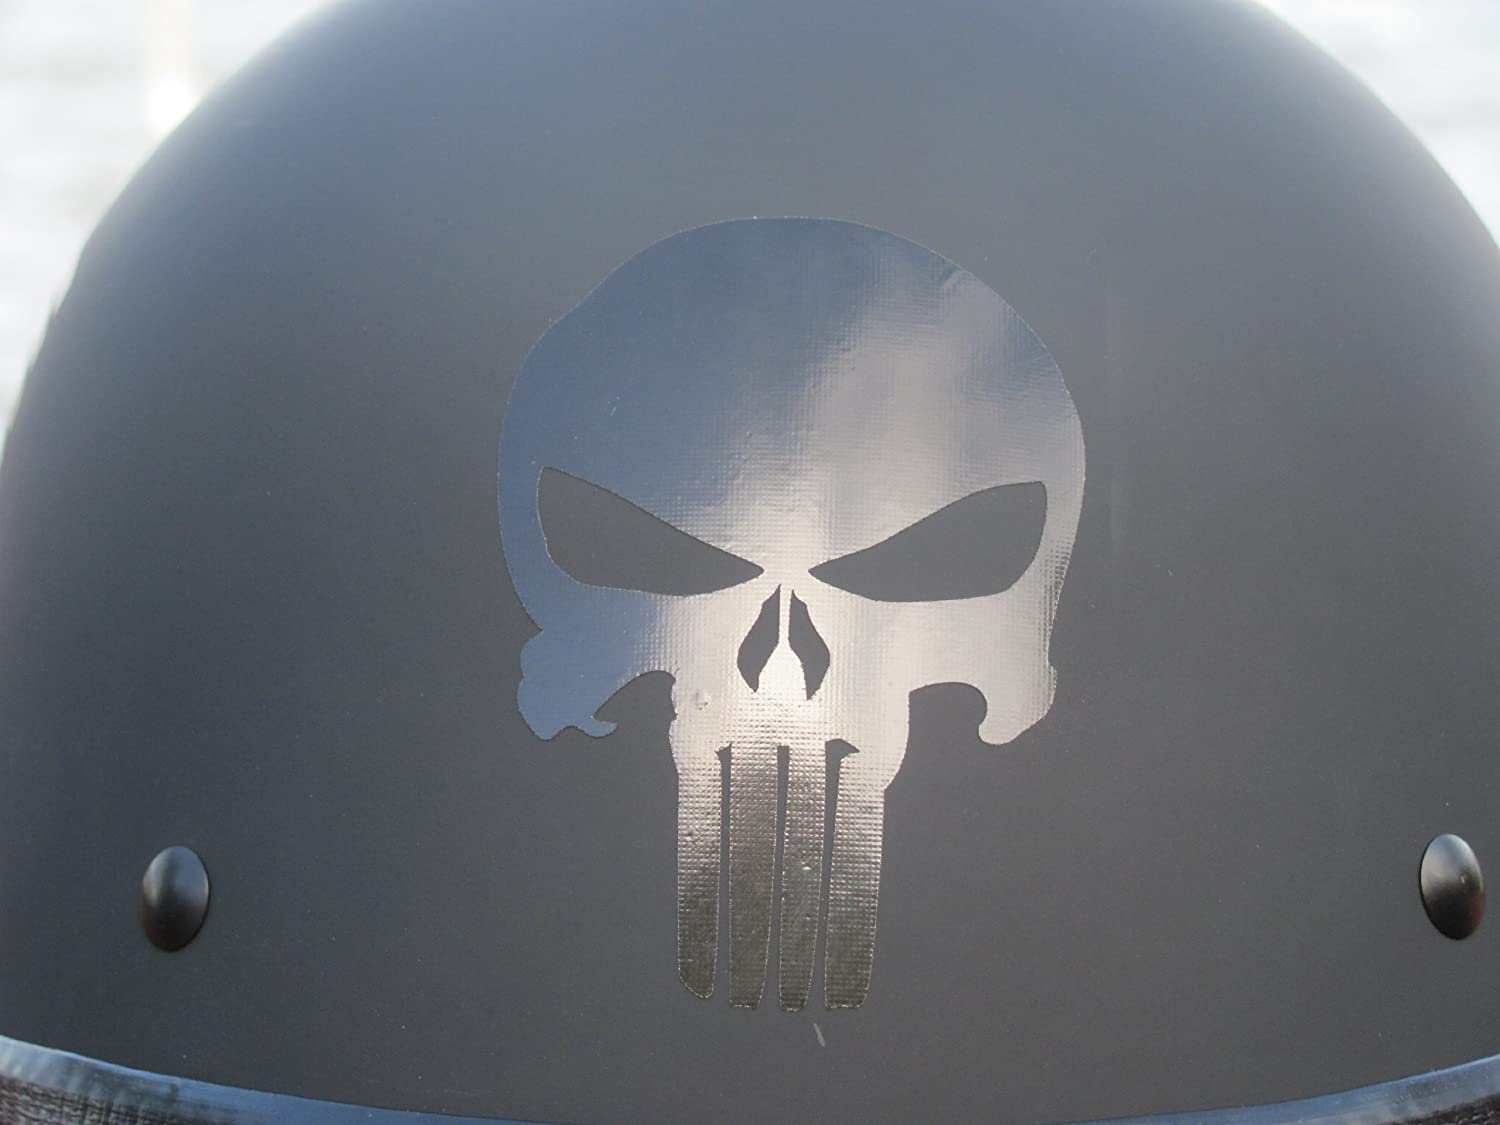 Amazoncom Reflective Punisher Skull Helmet Decal In BLACK - Vinyl decals for motorcycle helmets